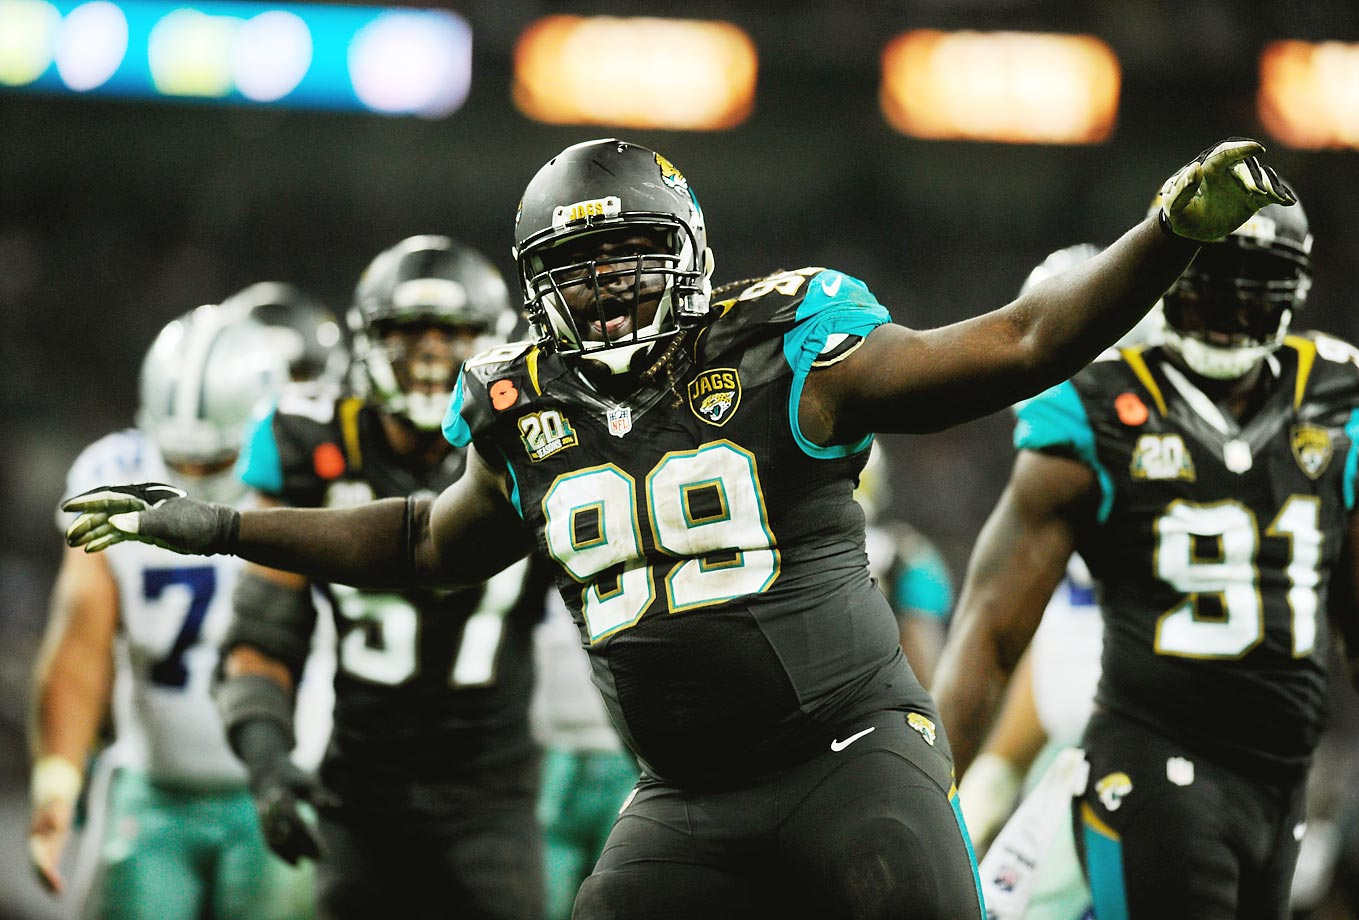 One day, this might be Blake Bortles or Denard Robinson. For now, the honor goes to Sen'Derrick Marks, one of the most unheralded players in the NFL. Marks had 8.5 sacks in 2014 and is becoming one of the more disruptive 4-3 defensive tackles going. Honorable mention: Stefen Wisniewski, Allen Robinson.